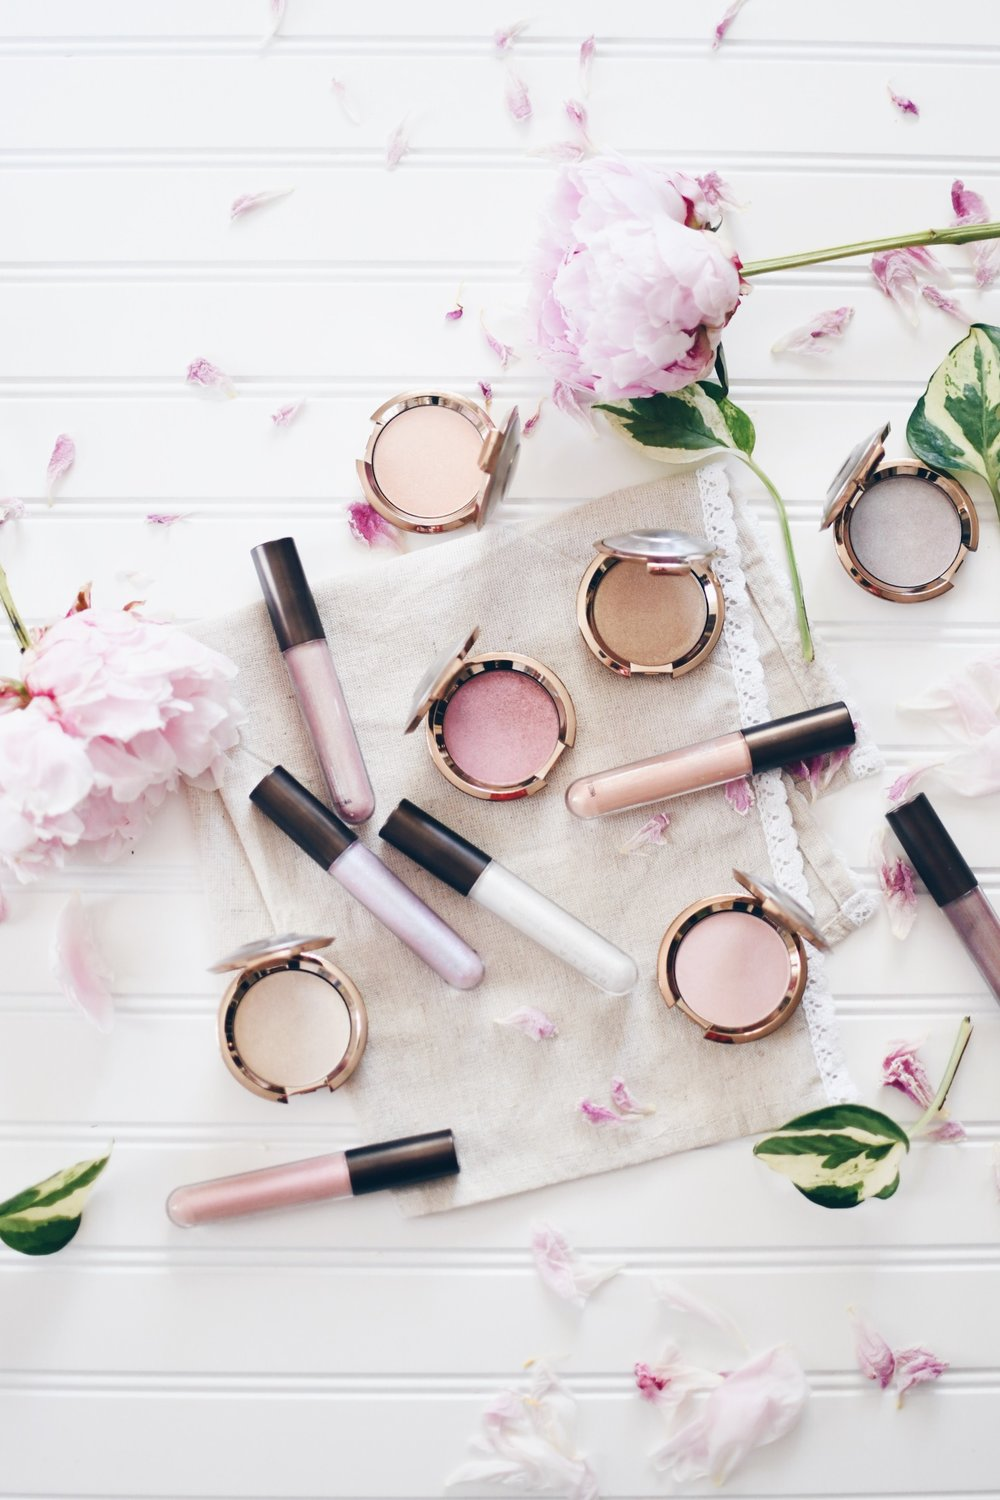 becca cosmetics highlighters and lip glosses